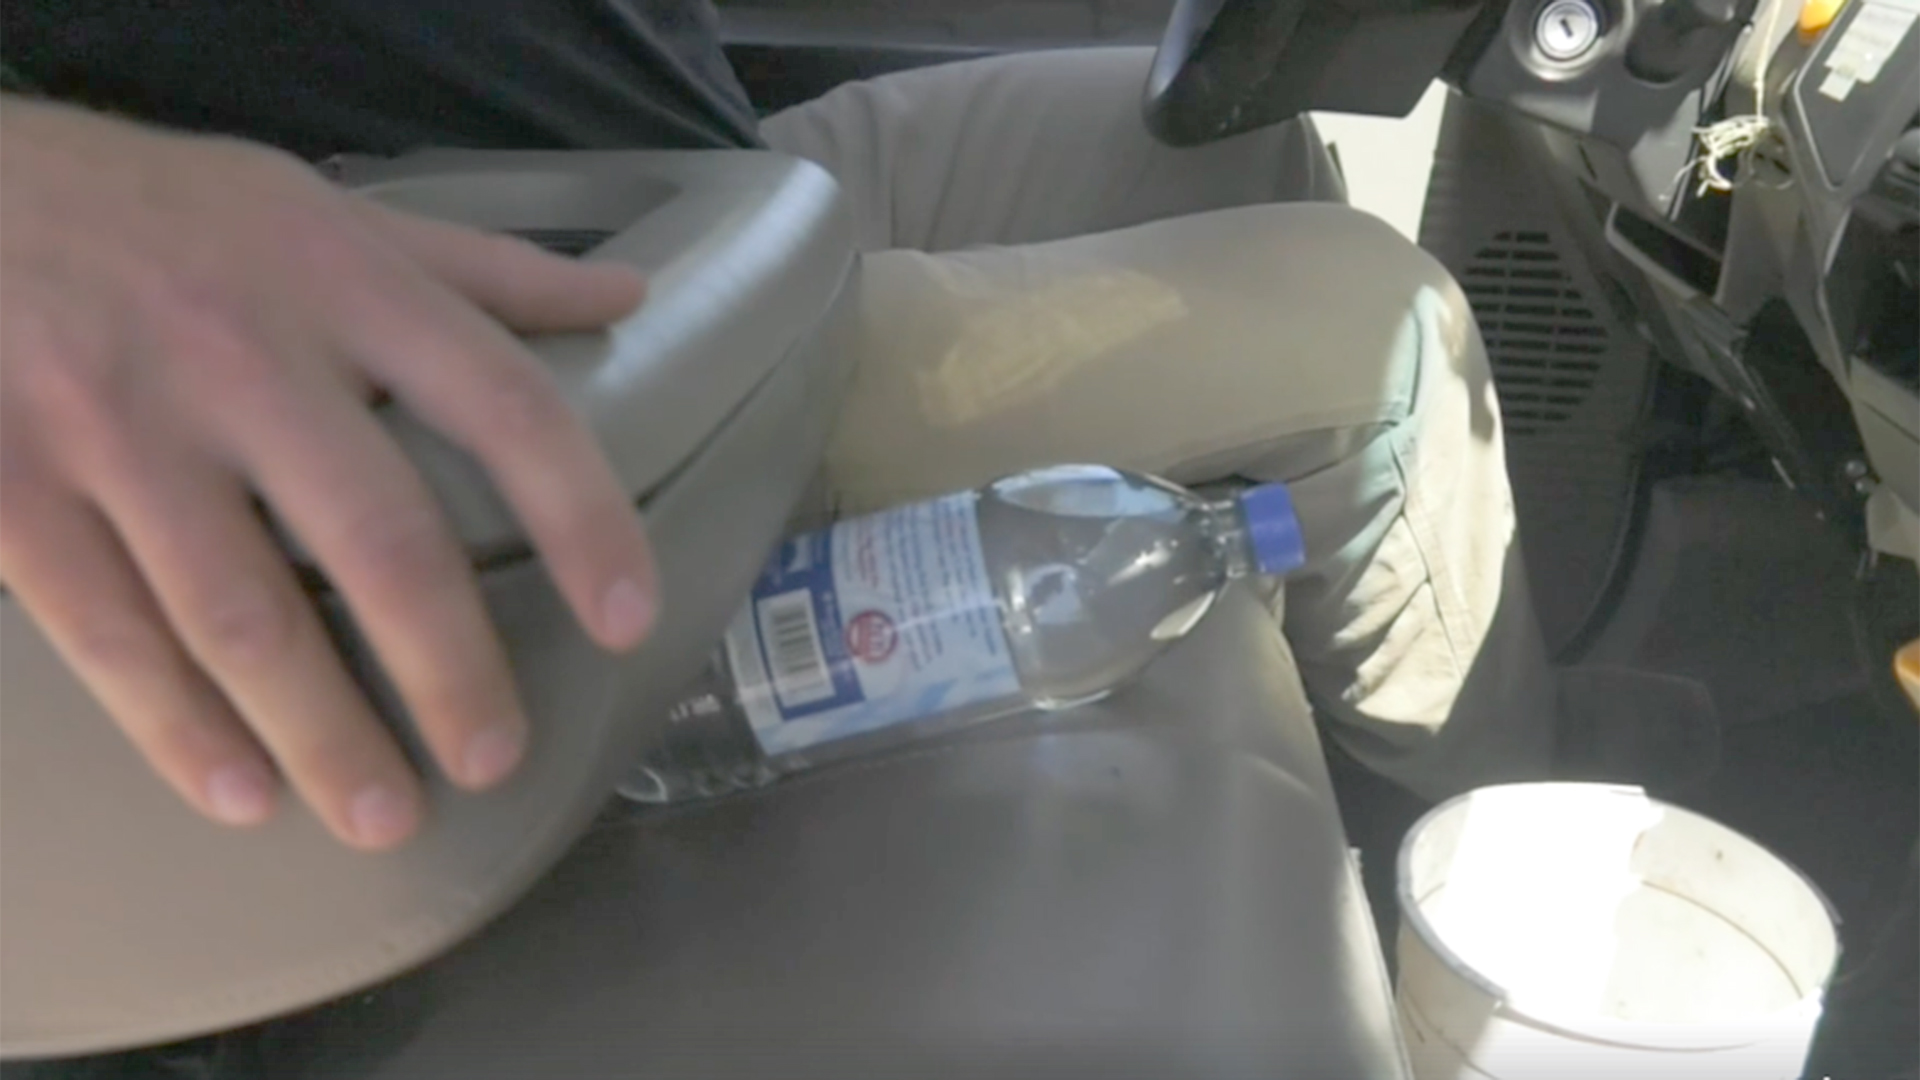 Firefighters Warn Leaving Bottled Water In Your Car Could Start A Fire The Heat An Automobile